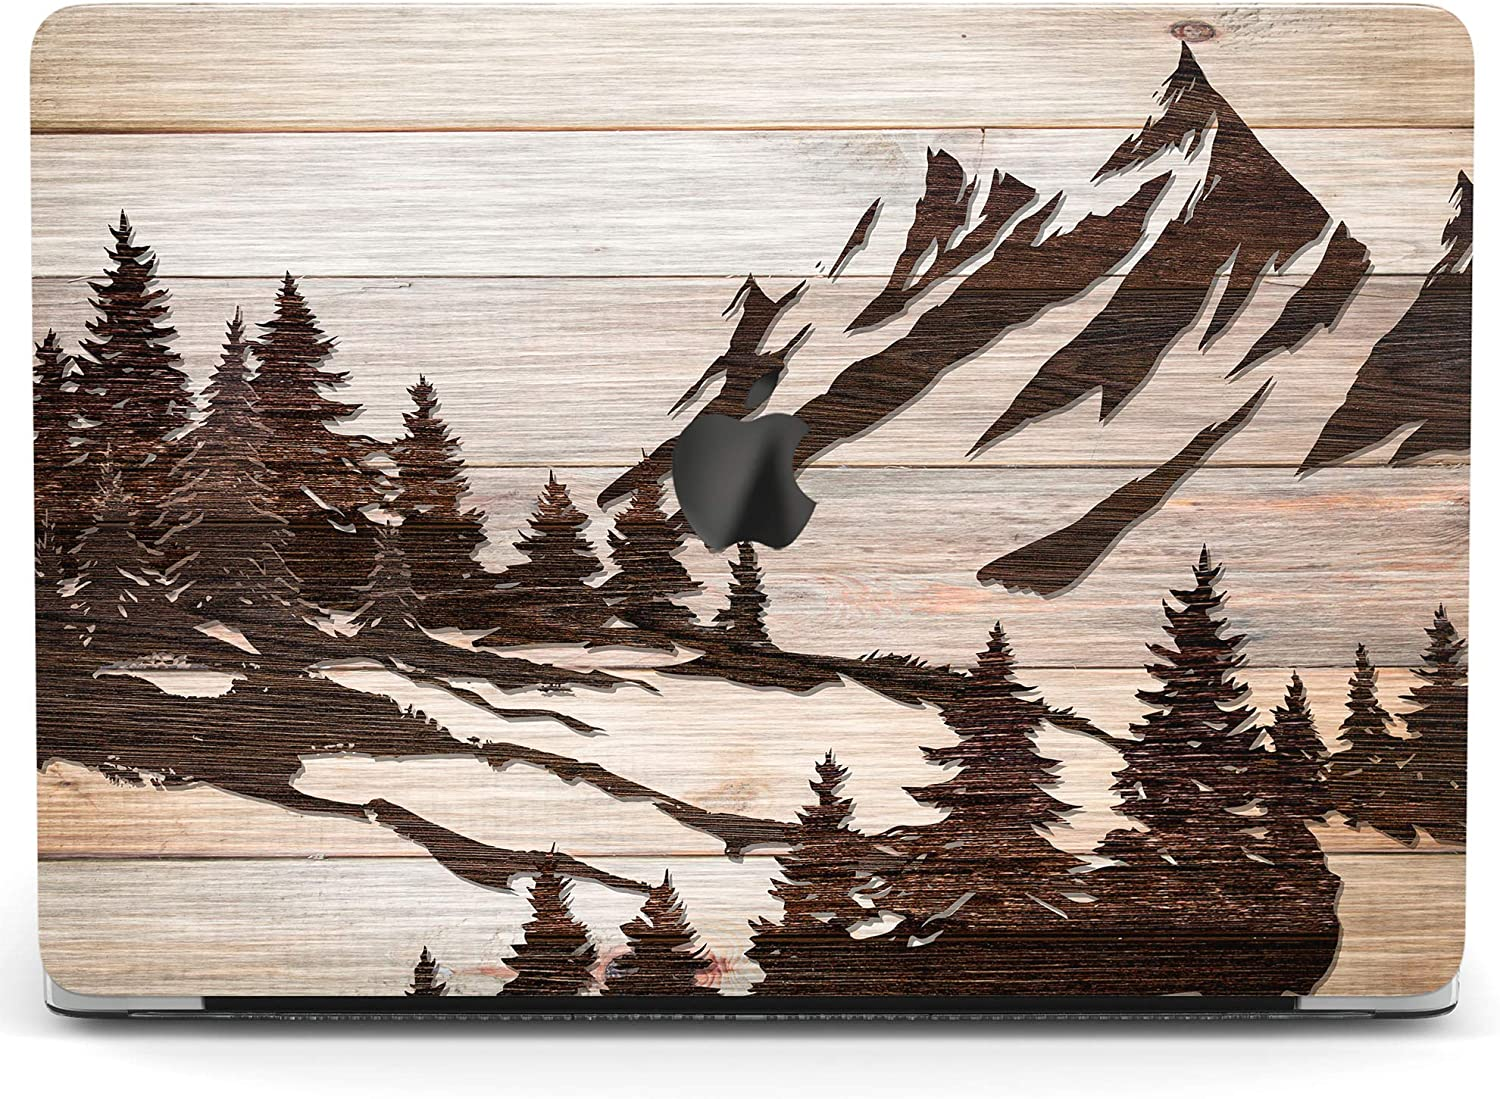 Wonder Wild Case for MacBook Air 13 inch Pro 15 2019 2018 Retina 12 11 Apple Hard Mac Protective Cover Touch Bar 2017 2016 2020 Plastic Laptop Print Mountain Art Travel Wood Forest Landscape Carving